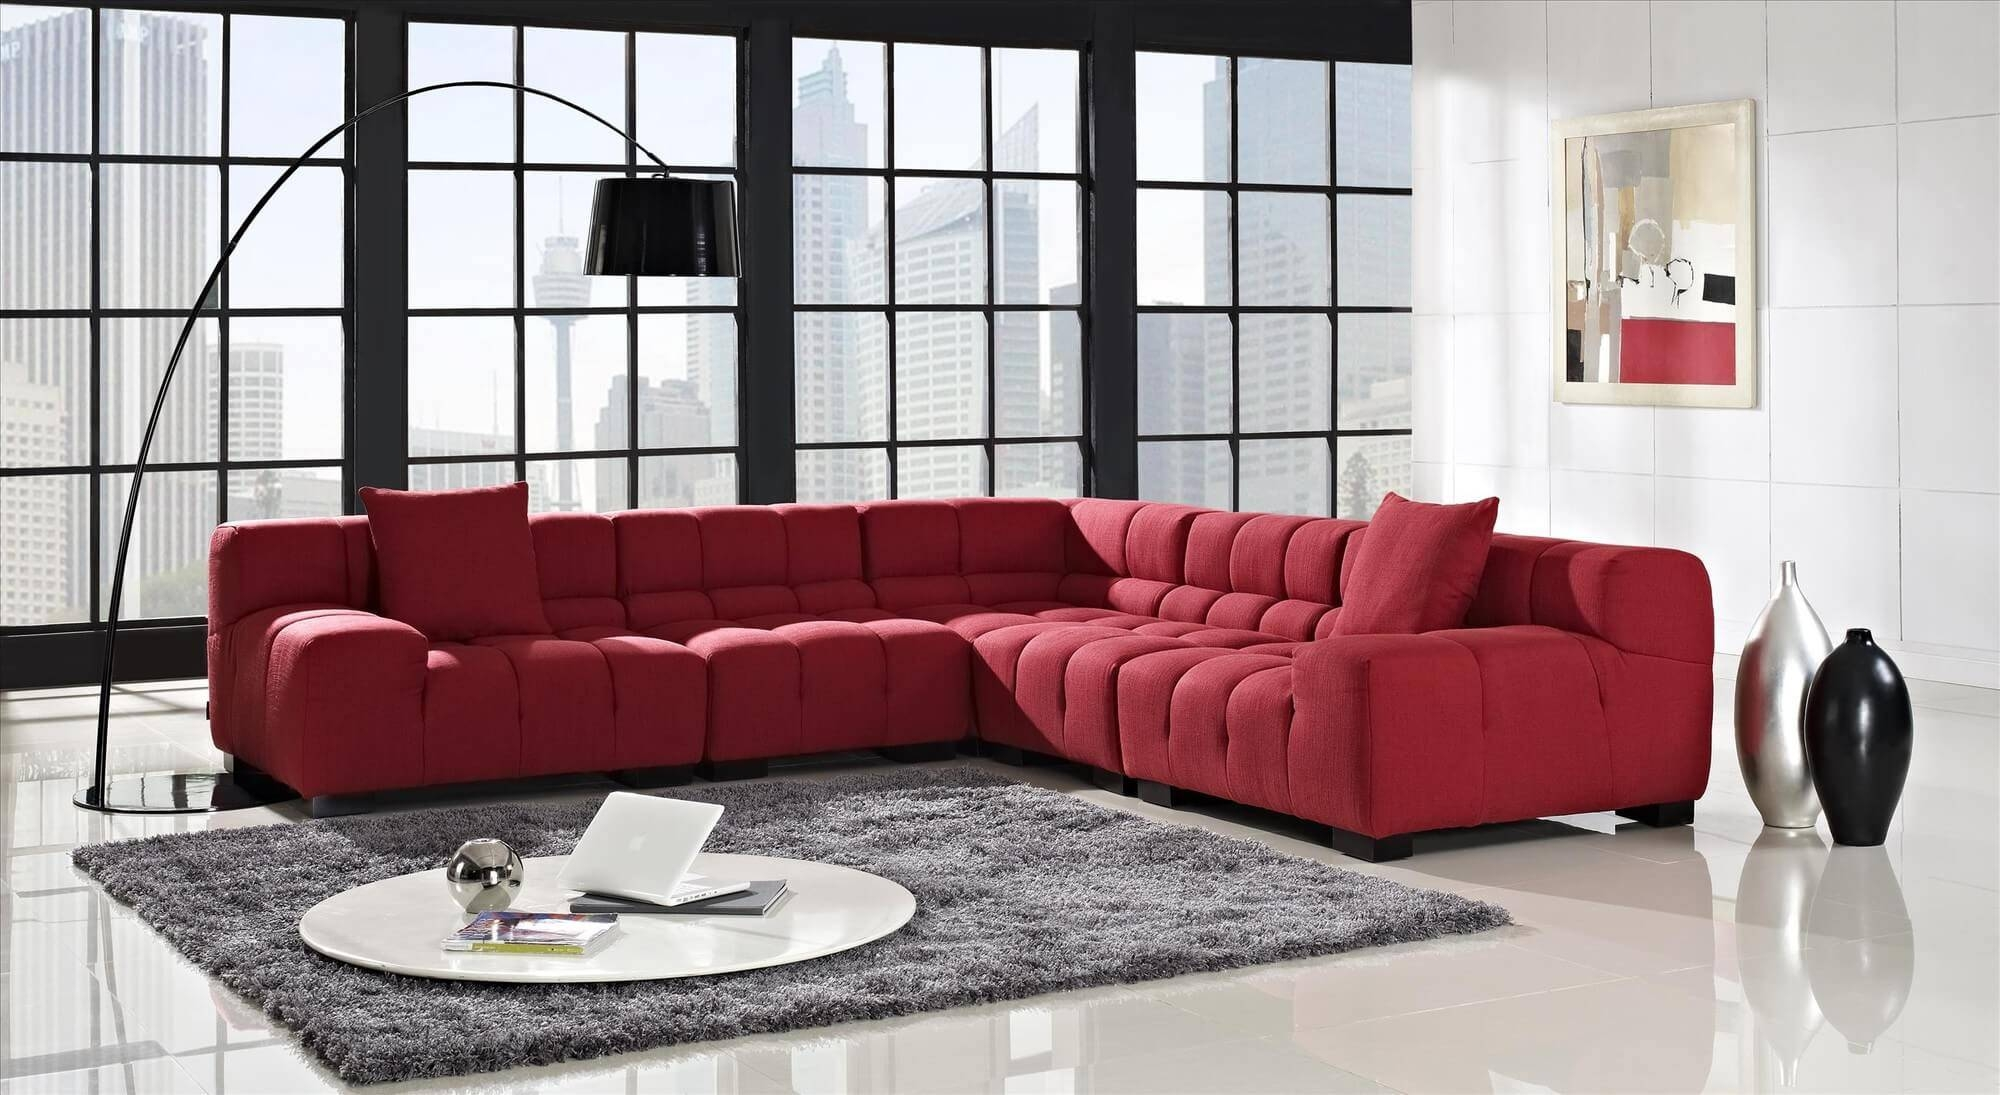 30 Best Collection of 10 Foot Sectional Sofa